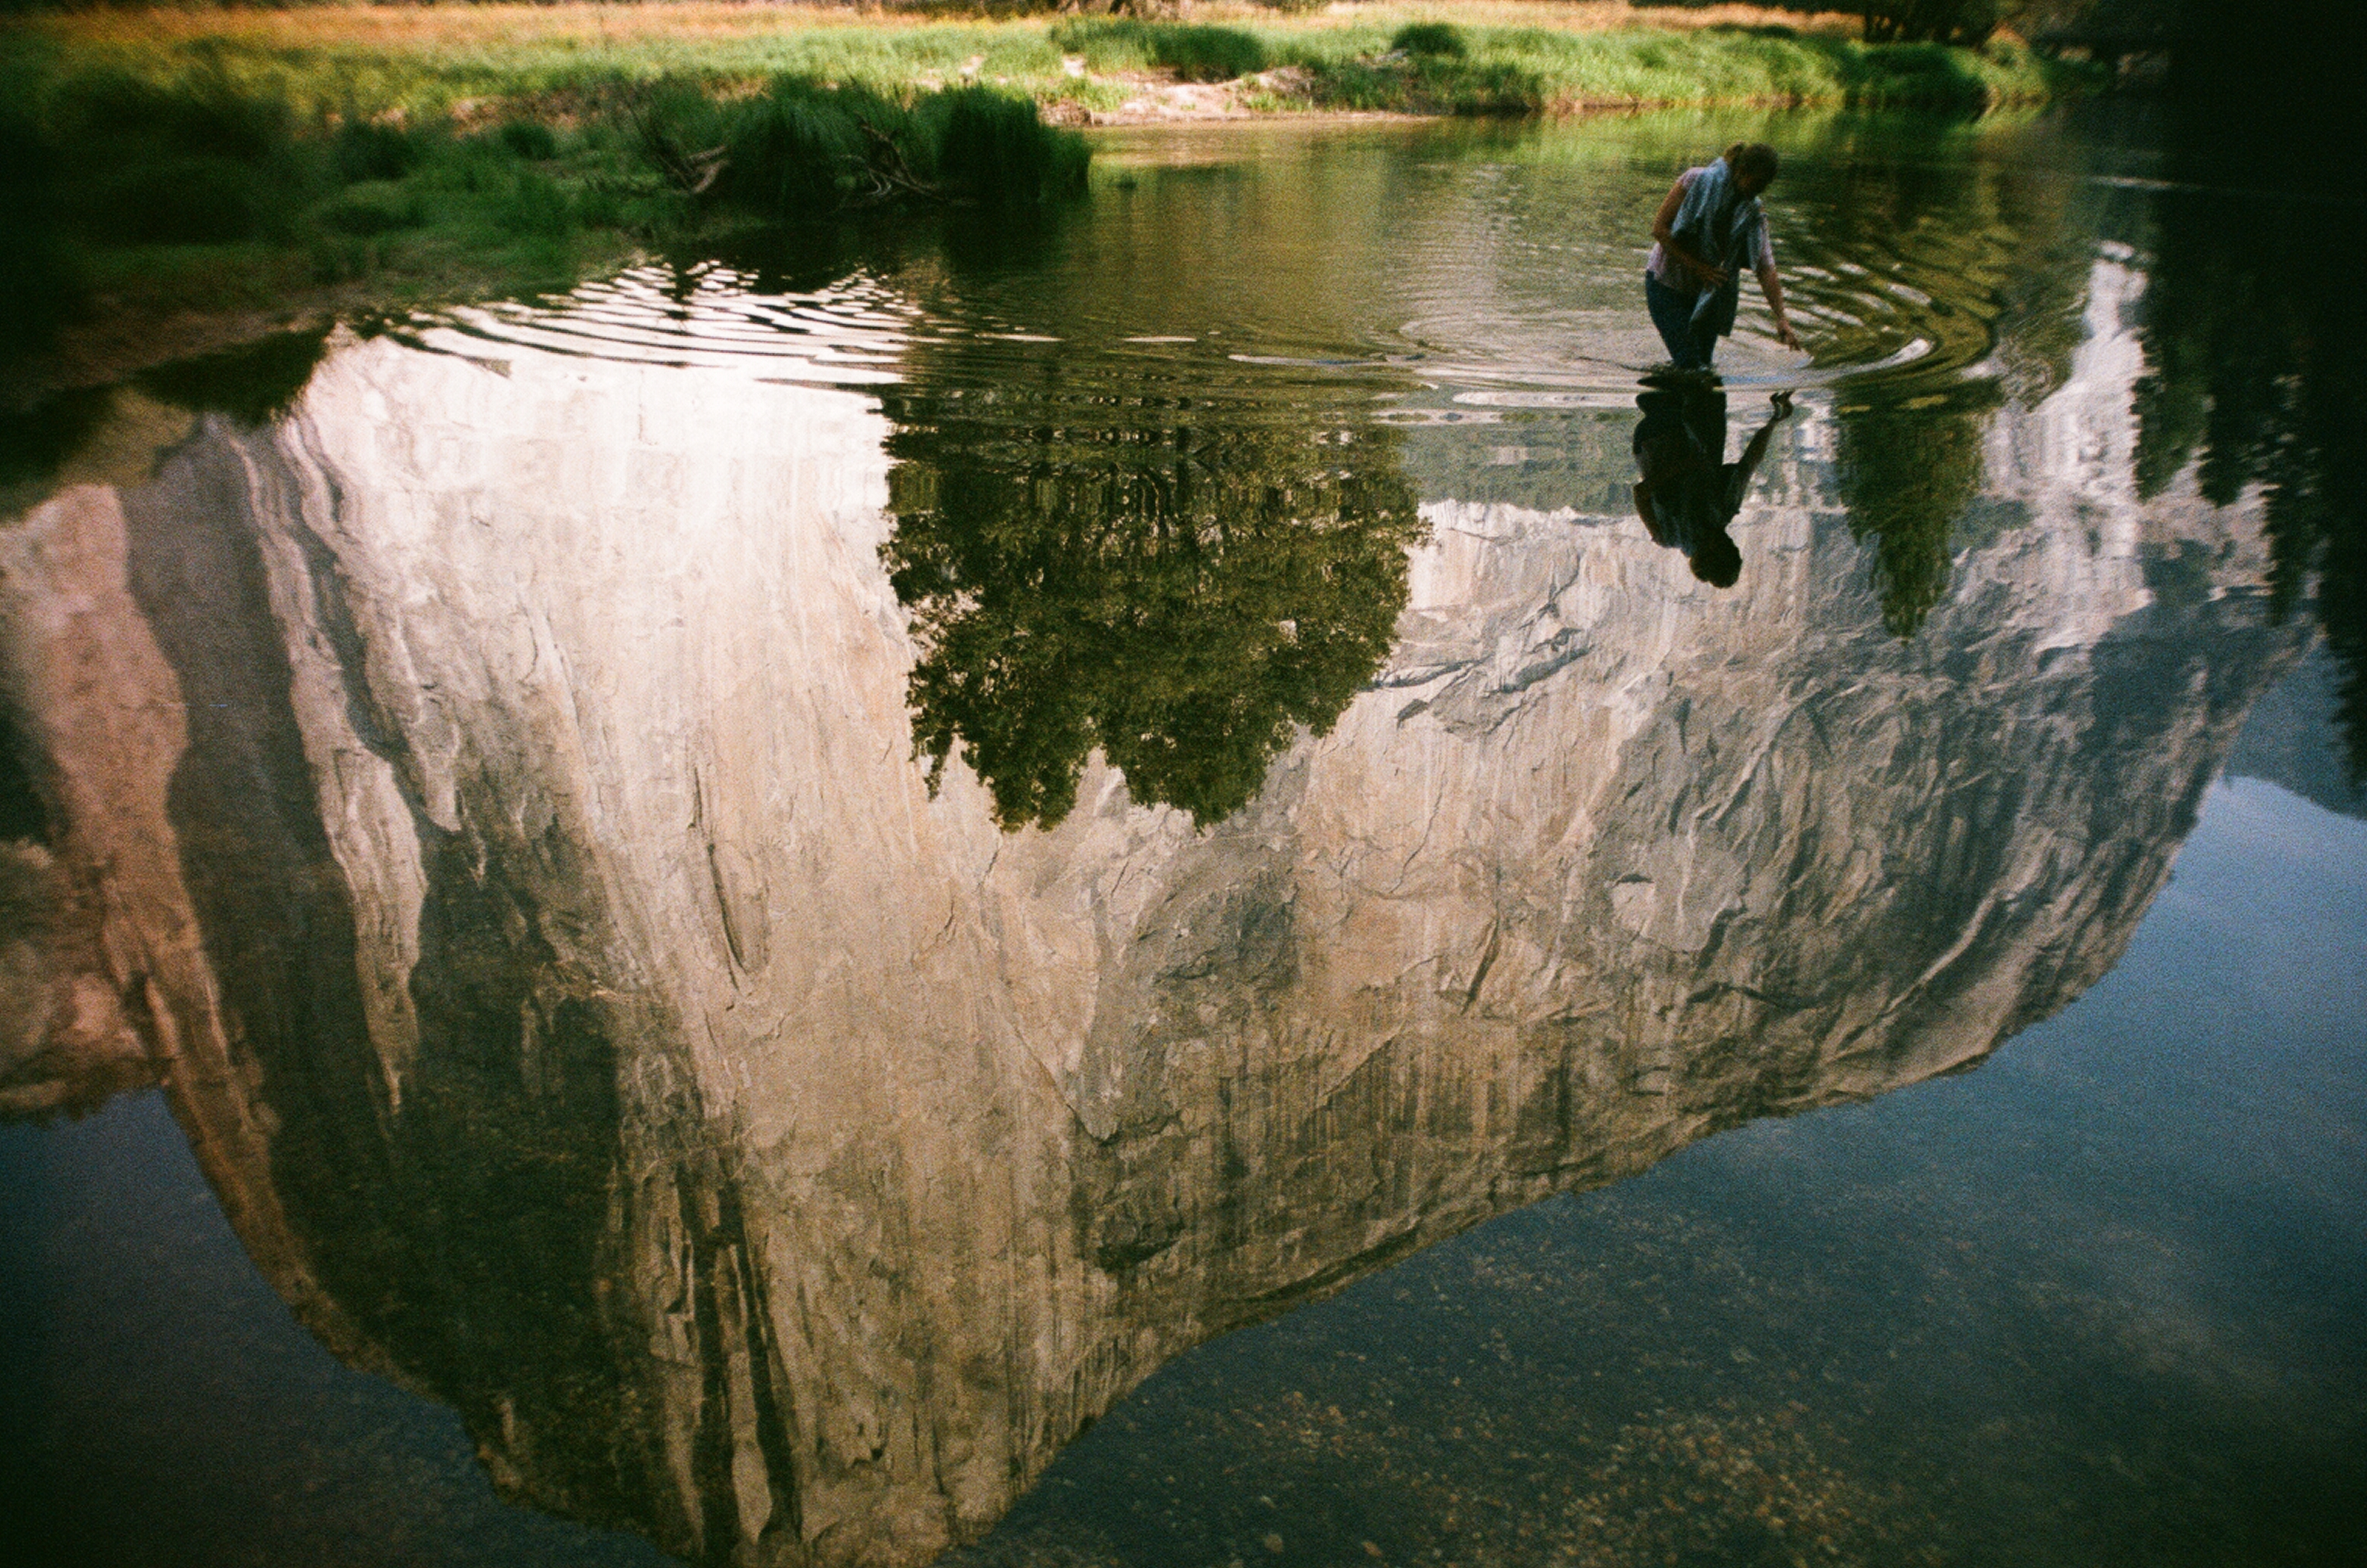 Reflection of a person and a mountain in water